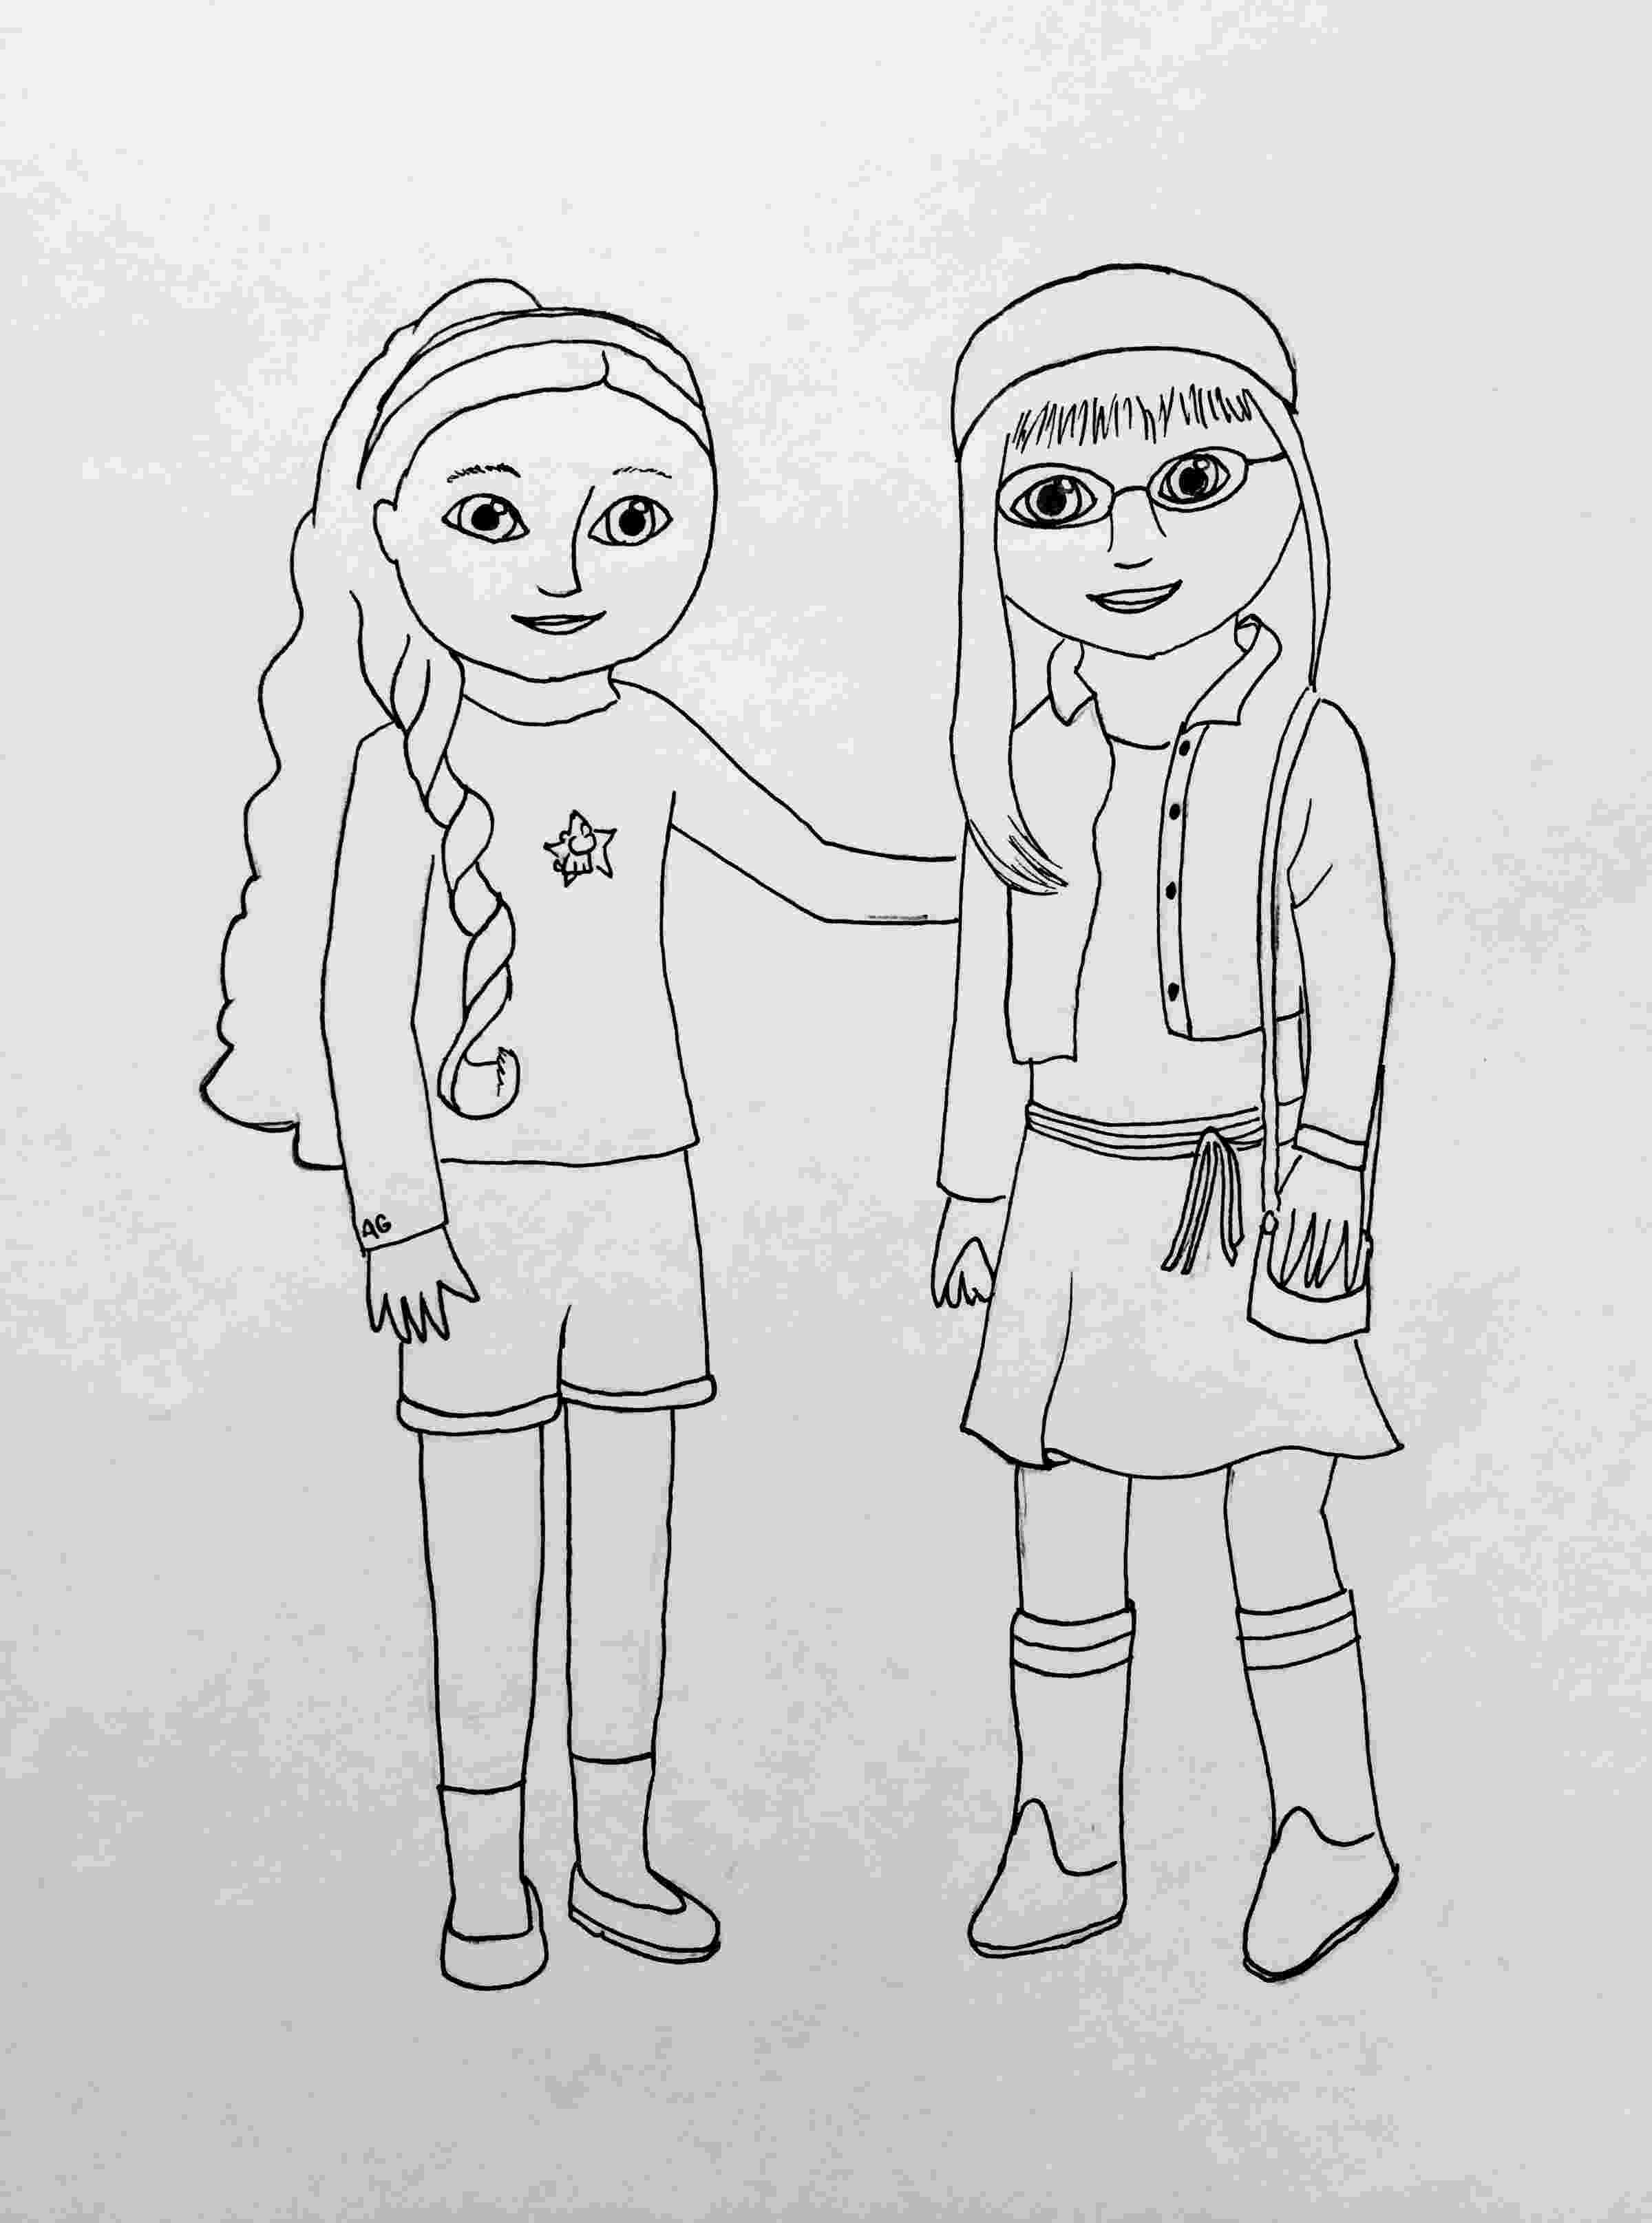 american girl coloring pages printable american girl coloring pages best coloring pages for kids pages american coloring printable girl